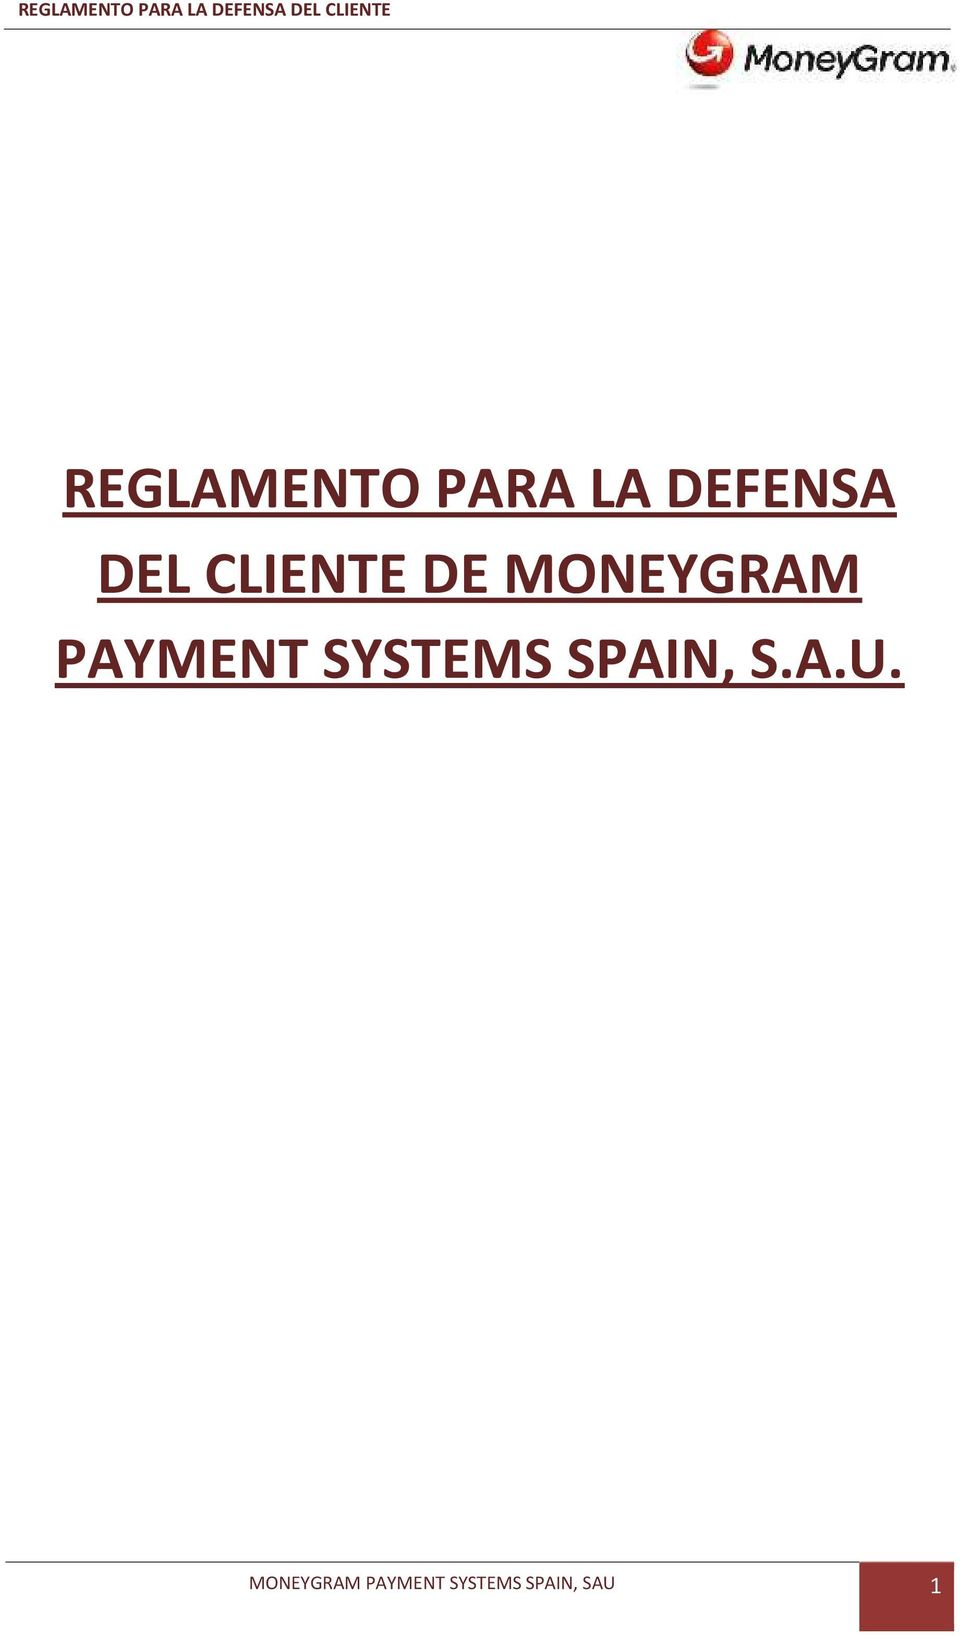 PAYMENT SYSTEMS SPAIN, S.A.U.